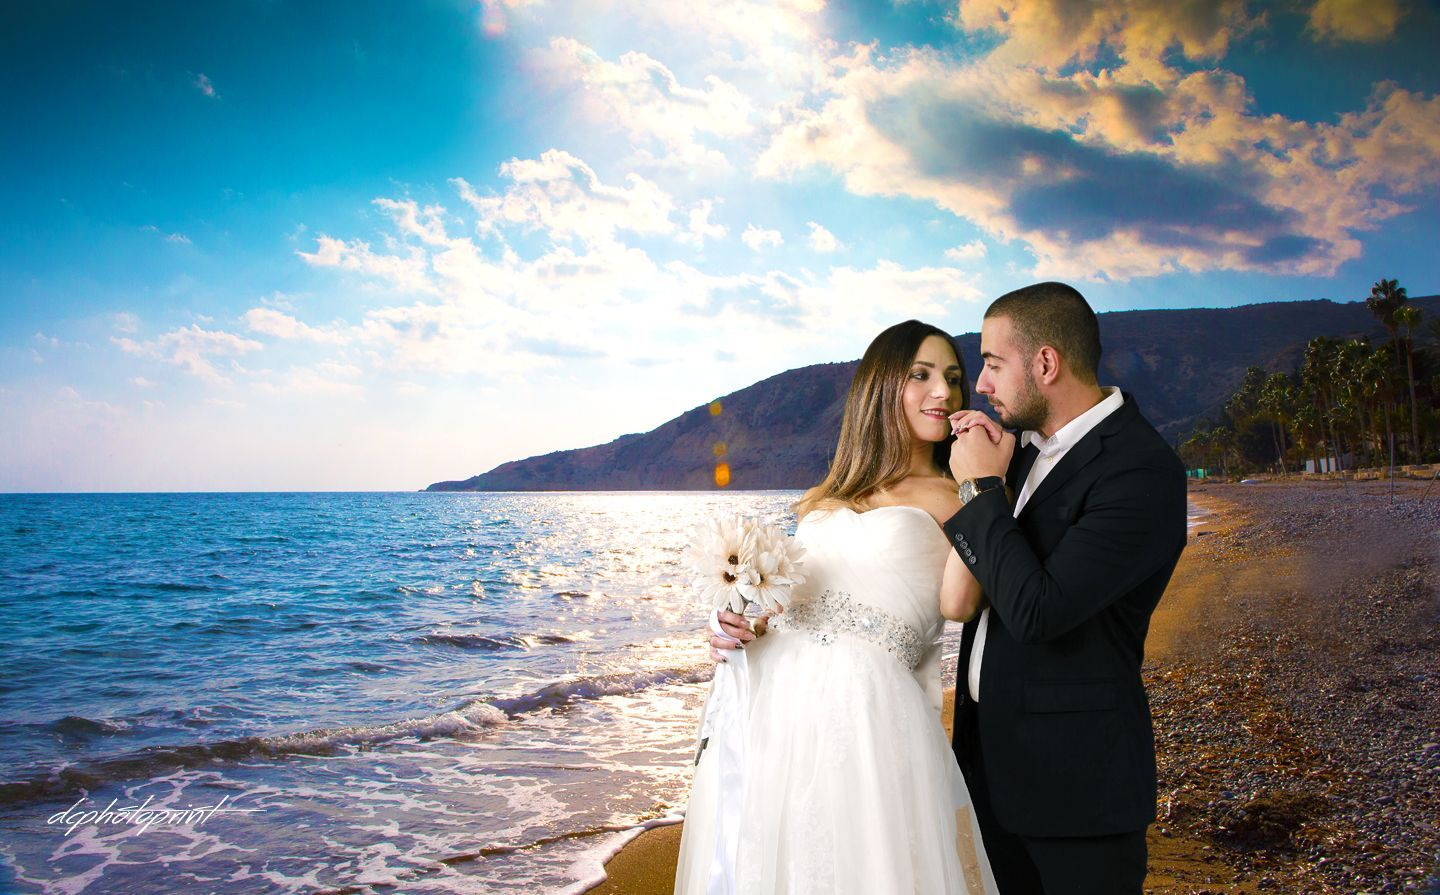 Pissouri Beach Www Dcphotoprint Com More Photo Https Www Dcphotoprint Com Cheap Wedding Photographers Top Wedding Photographers Wedding Dress Cost